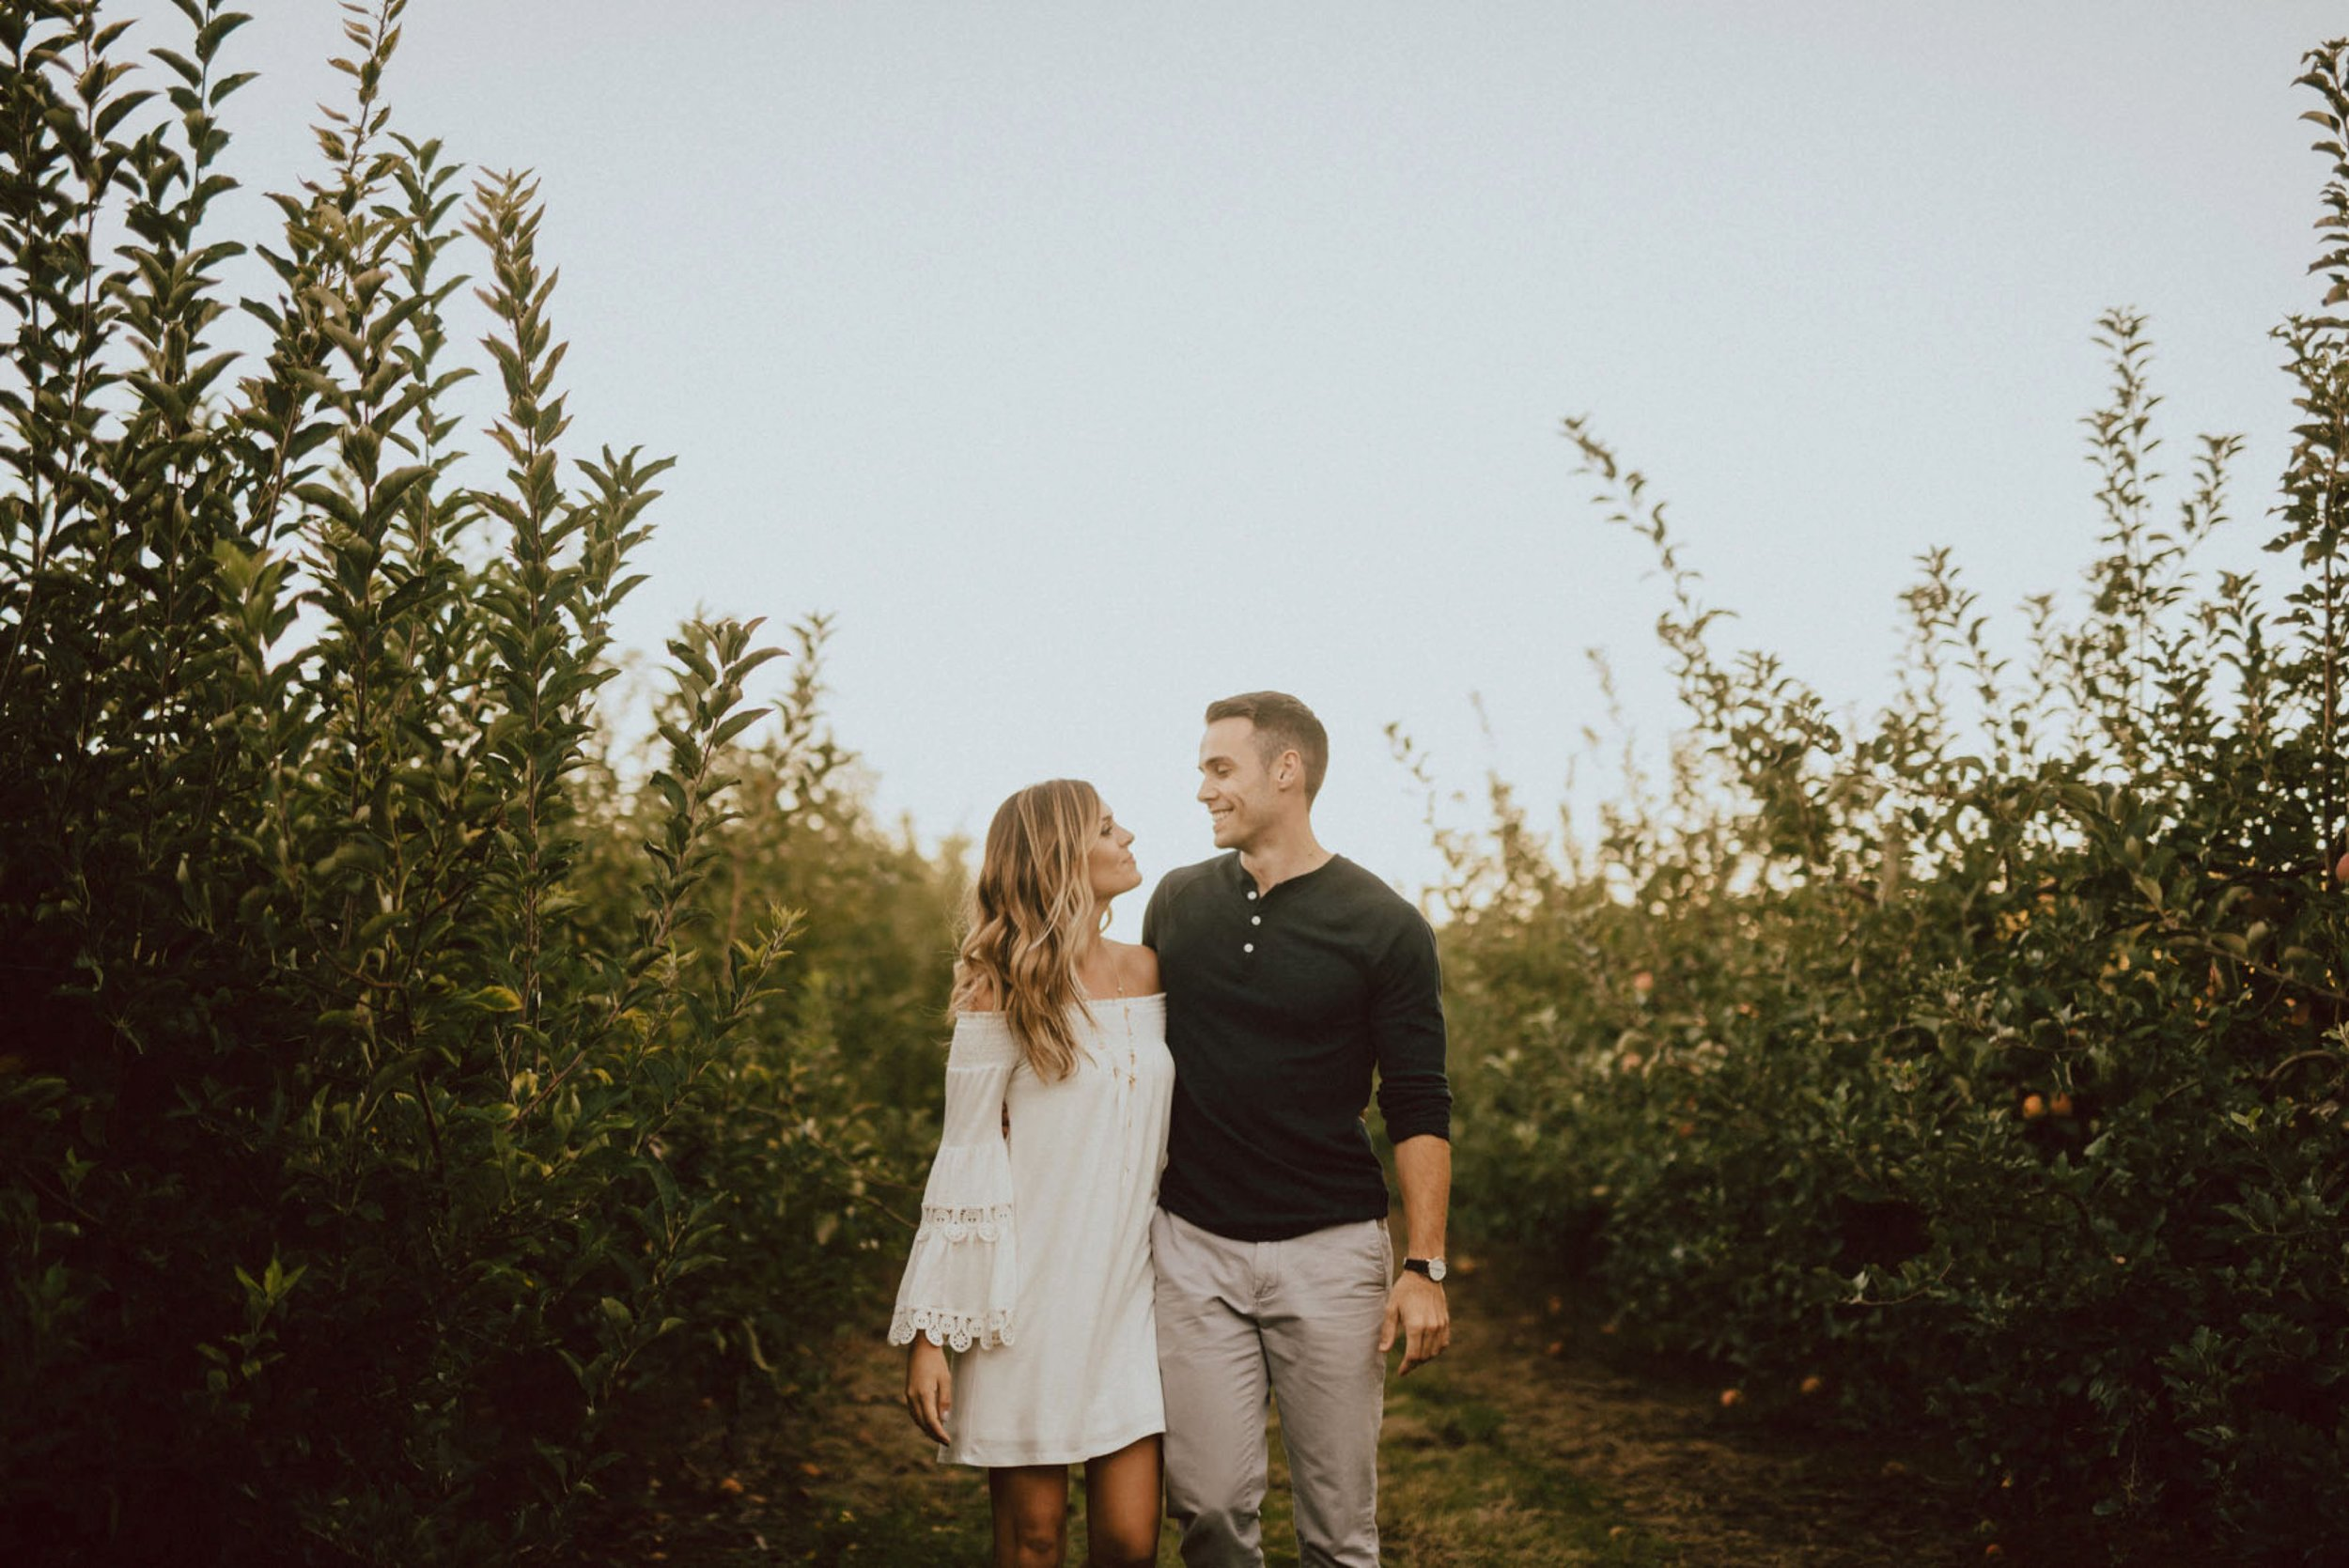 elkton-maryland-engagement-session-43.jpg